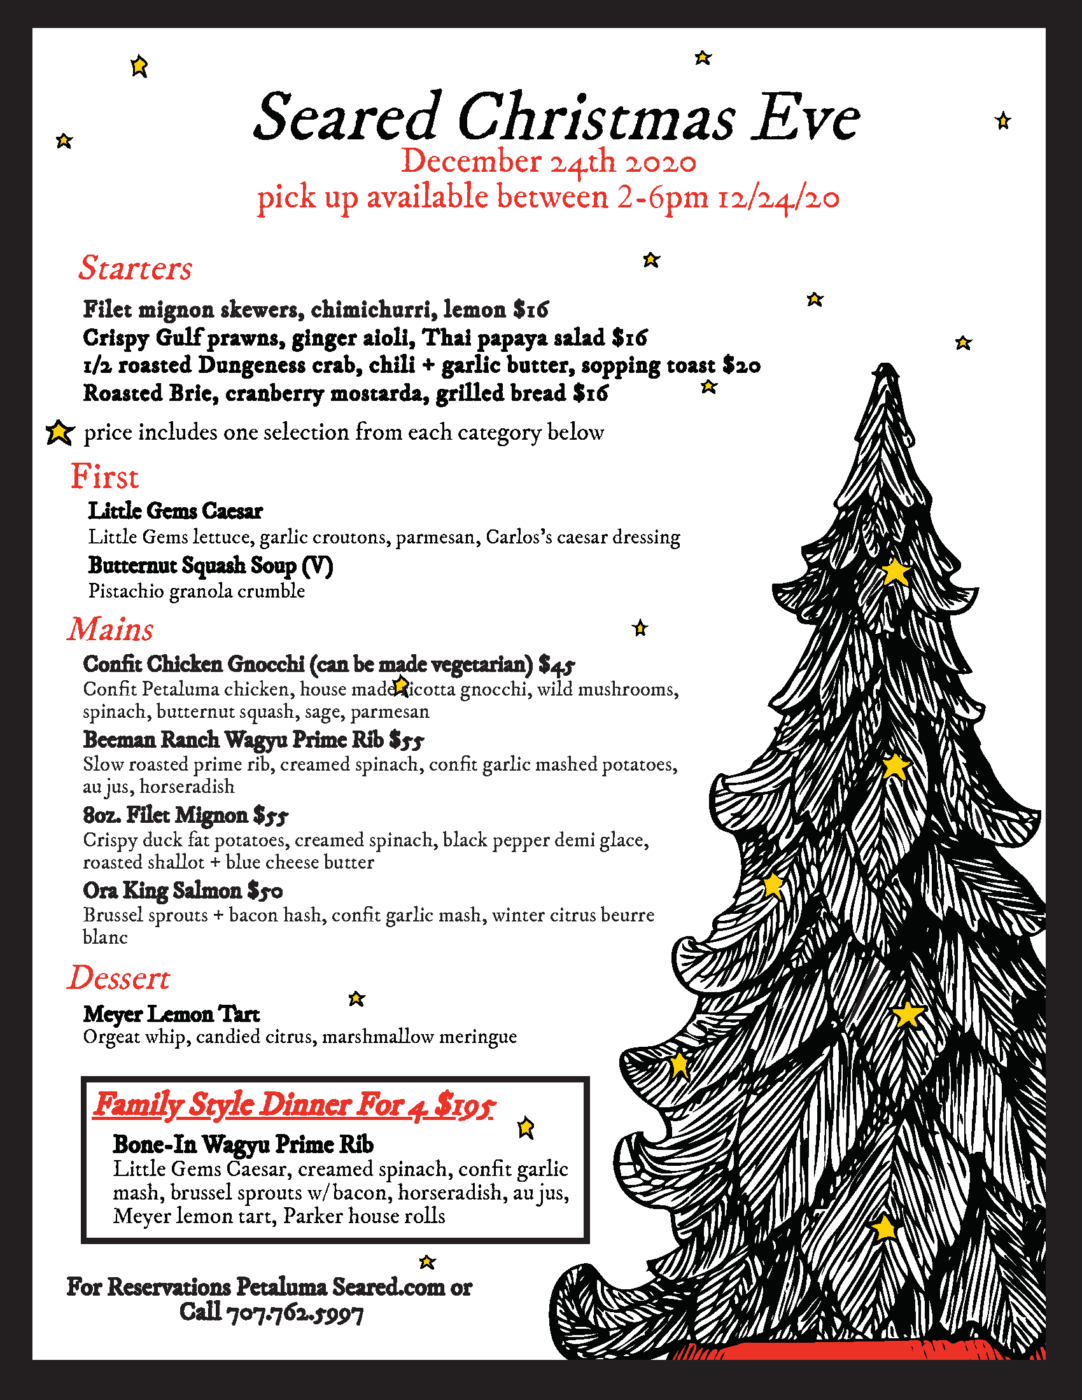 Christmas Eve Dinner To-Go menu from seared